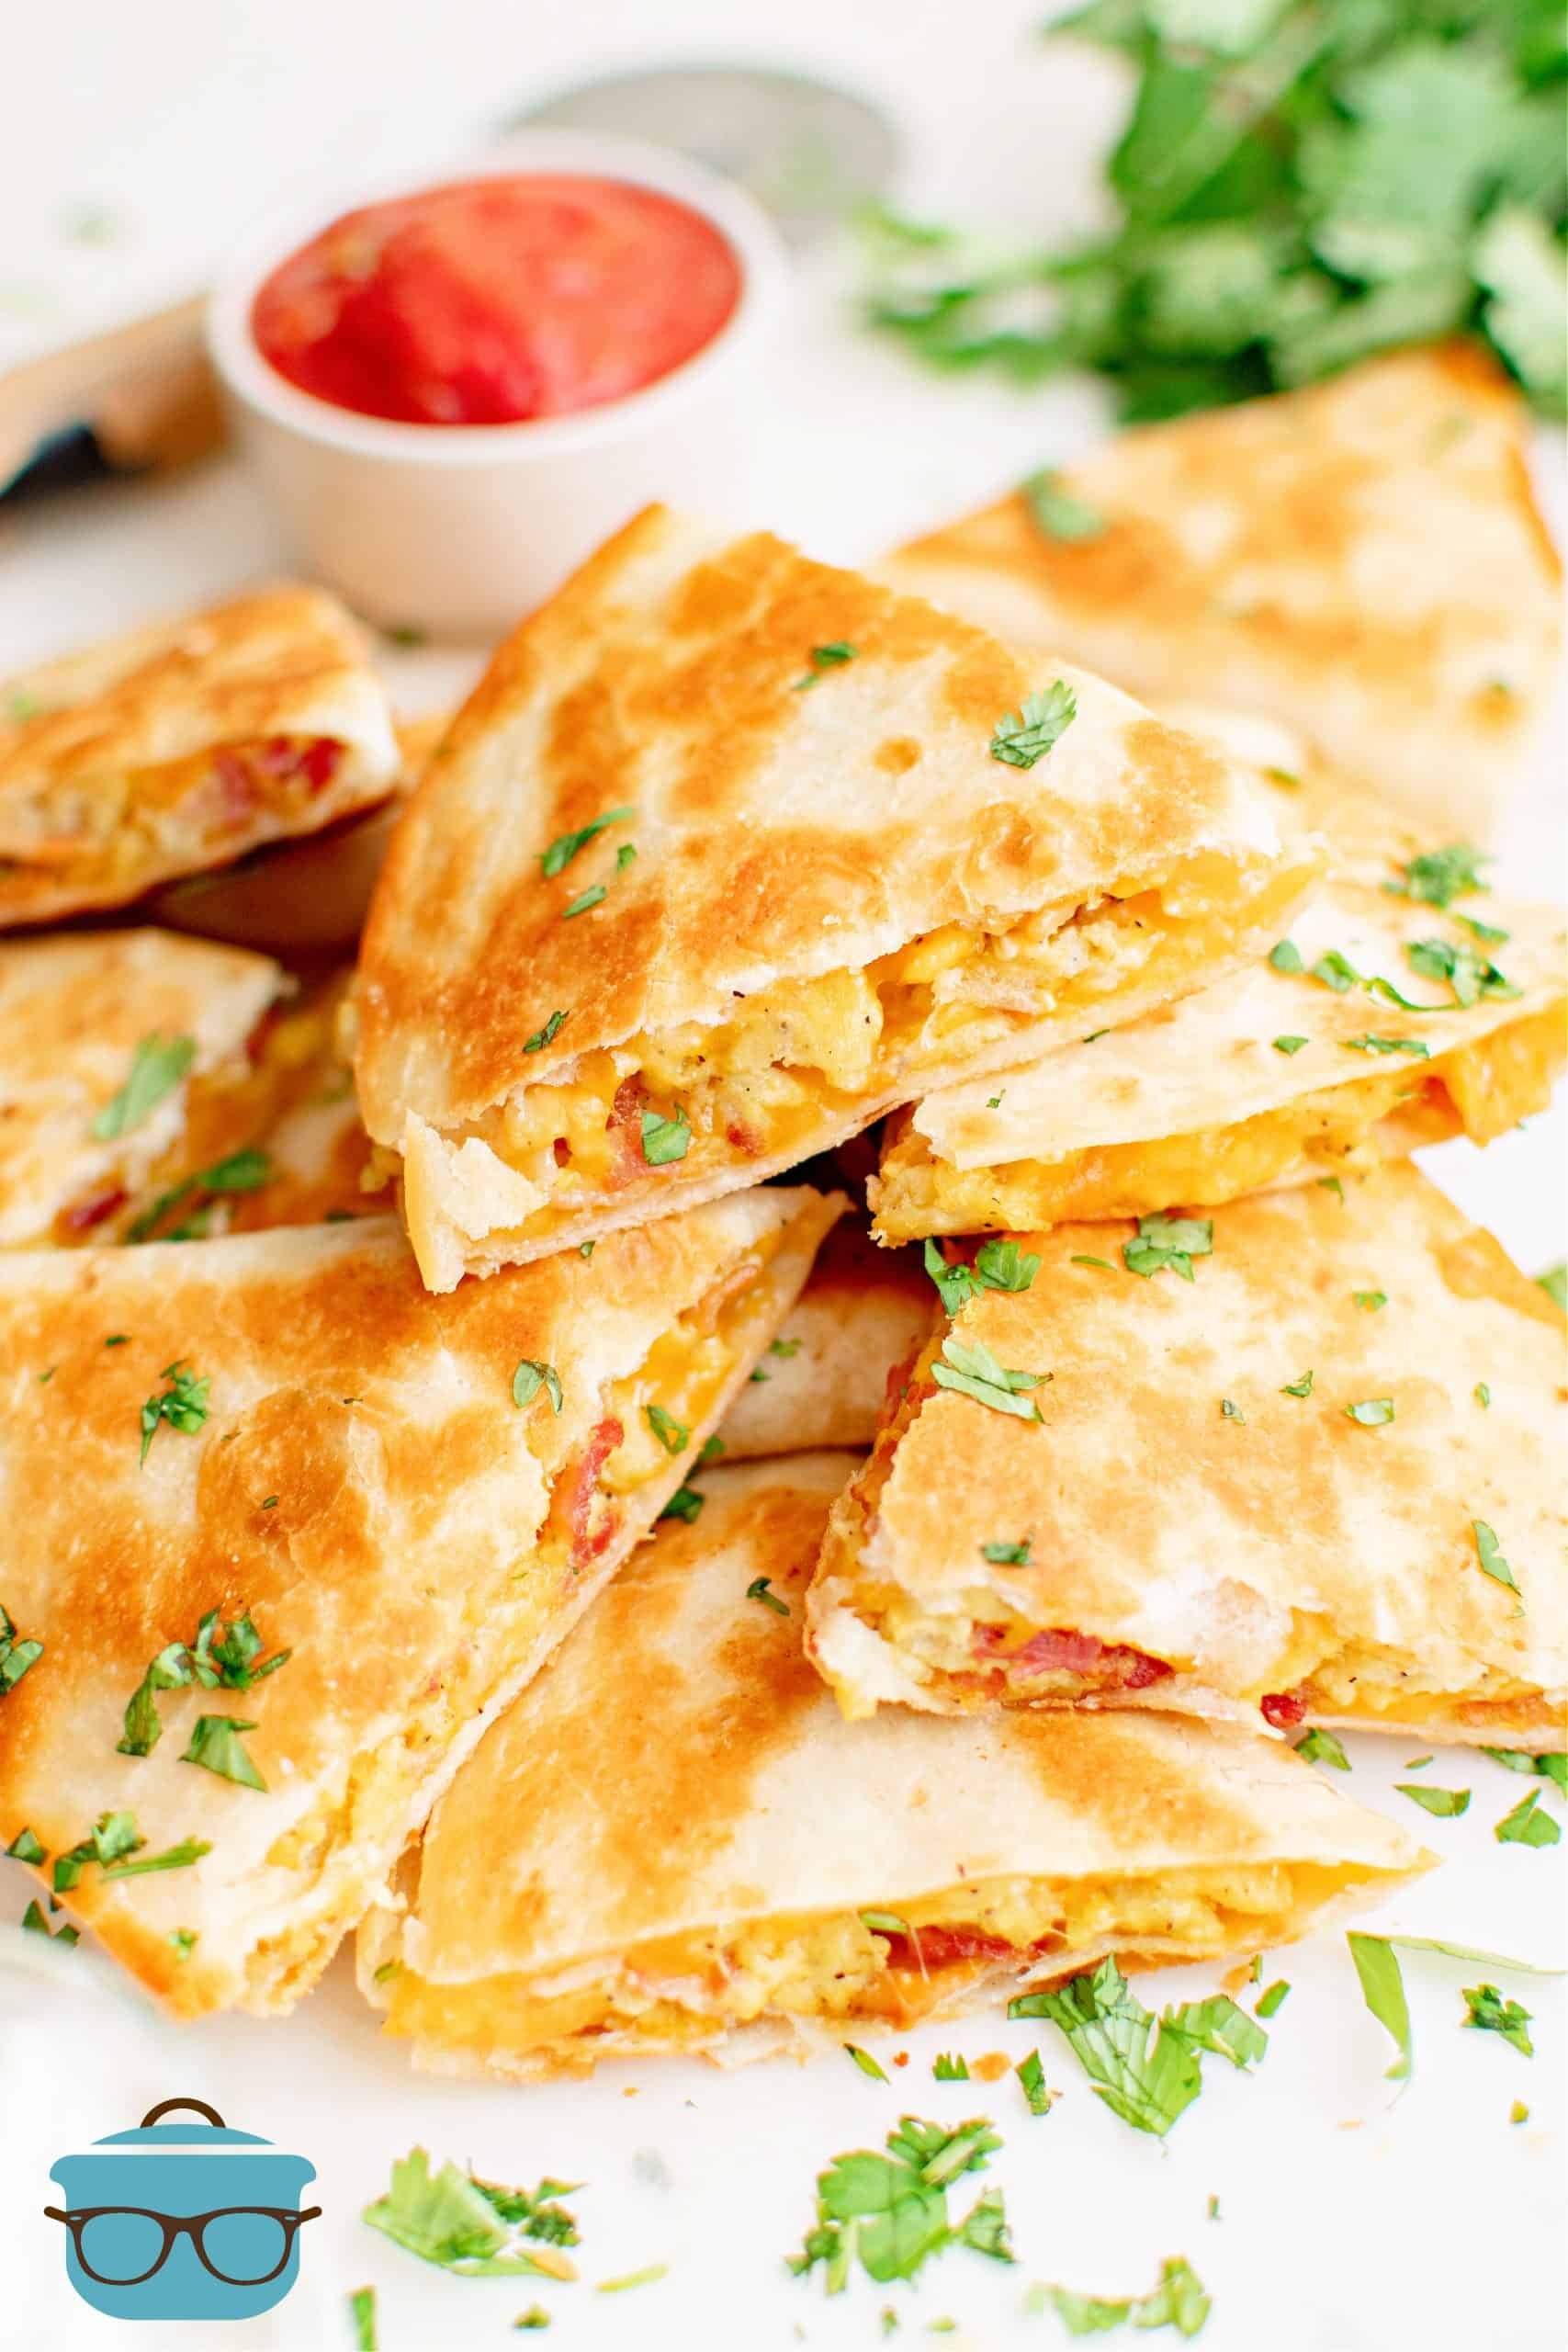 Stacked Breakfast Quesadillas with dipping sauce in background.